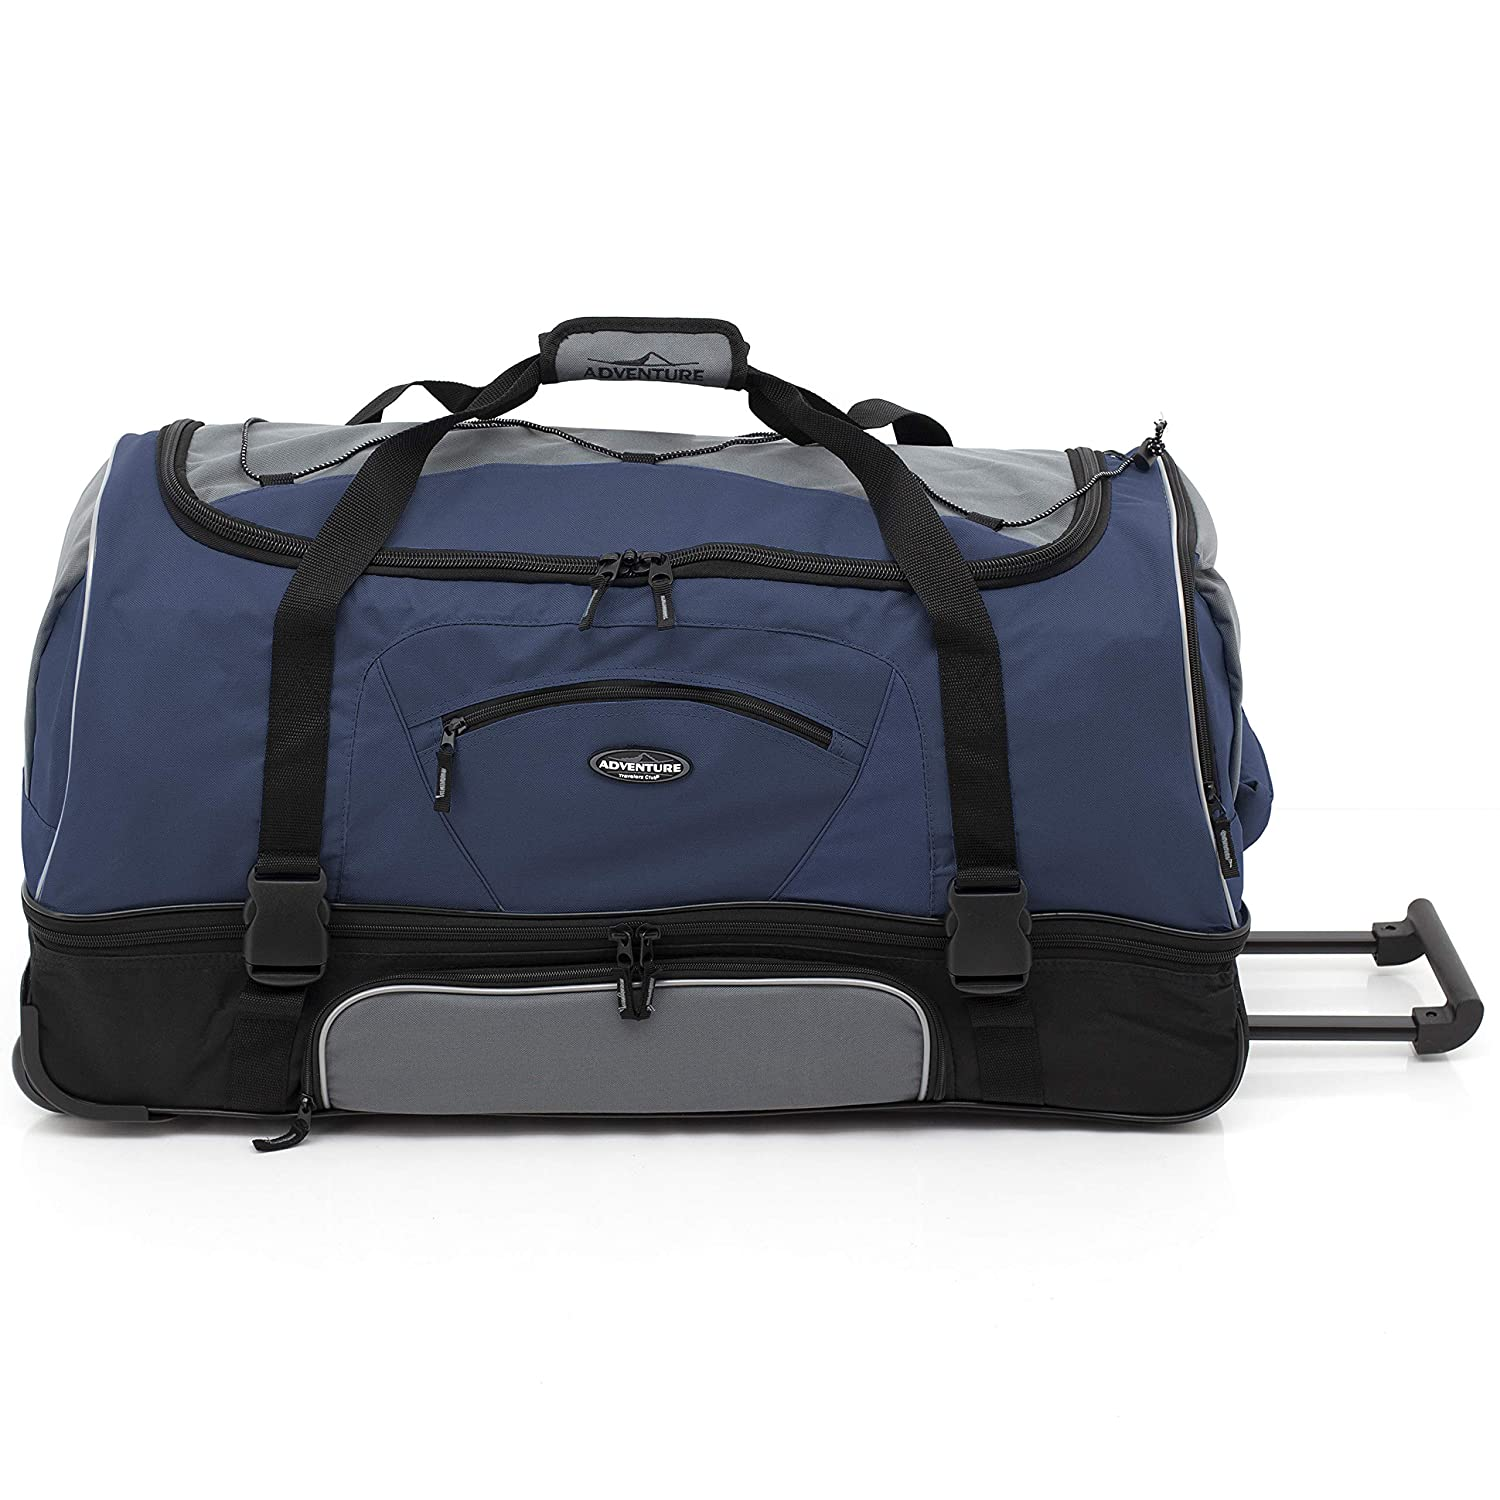 Travelers Club 30 ADVENTURE Travel Rolling Duffle Bag Blue